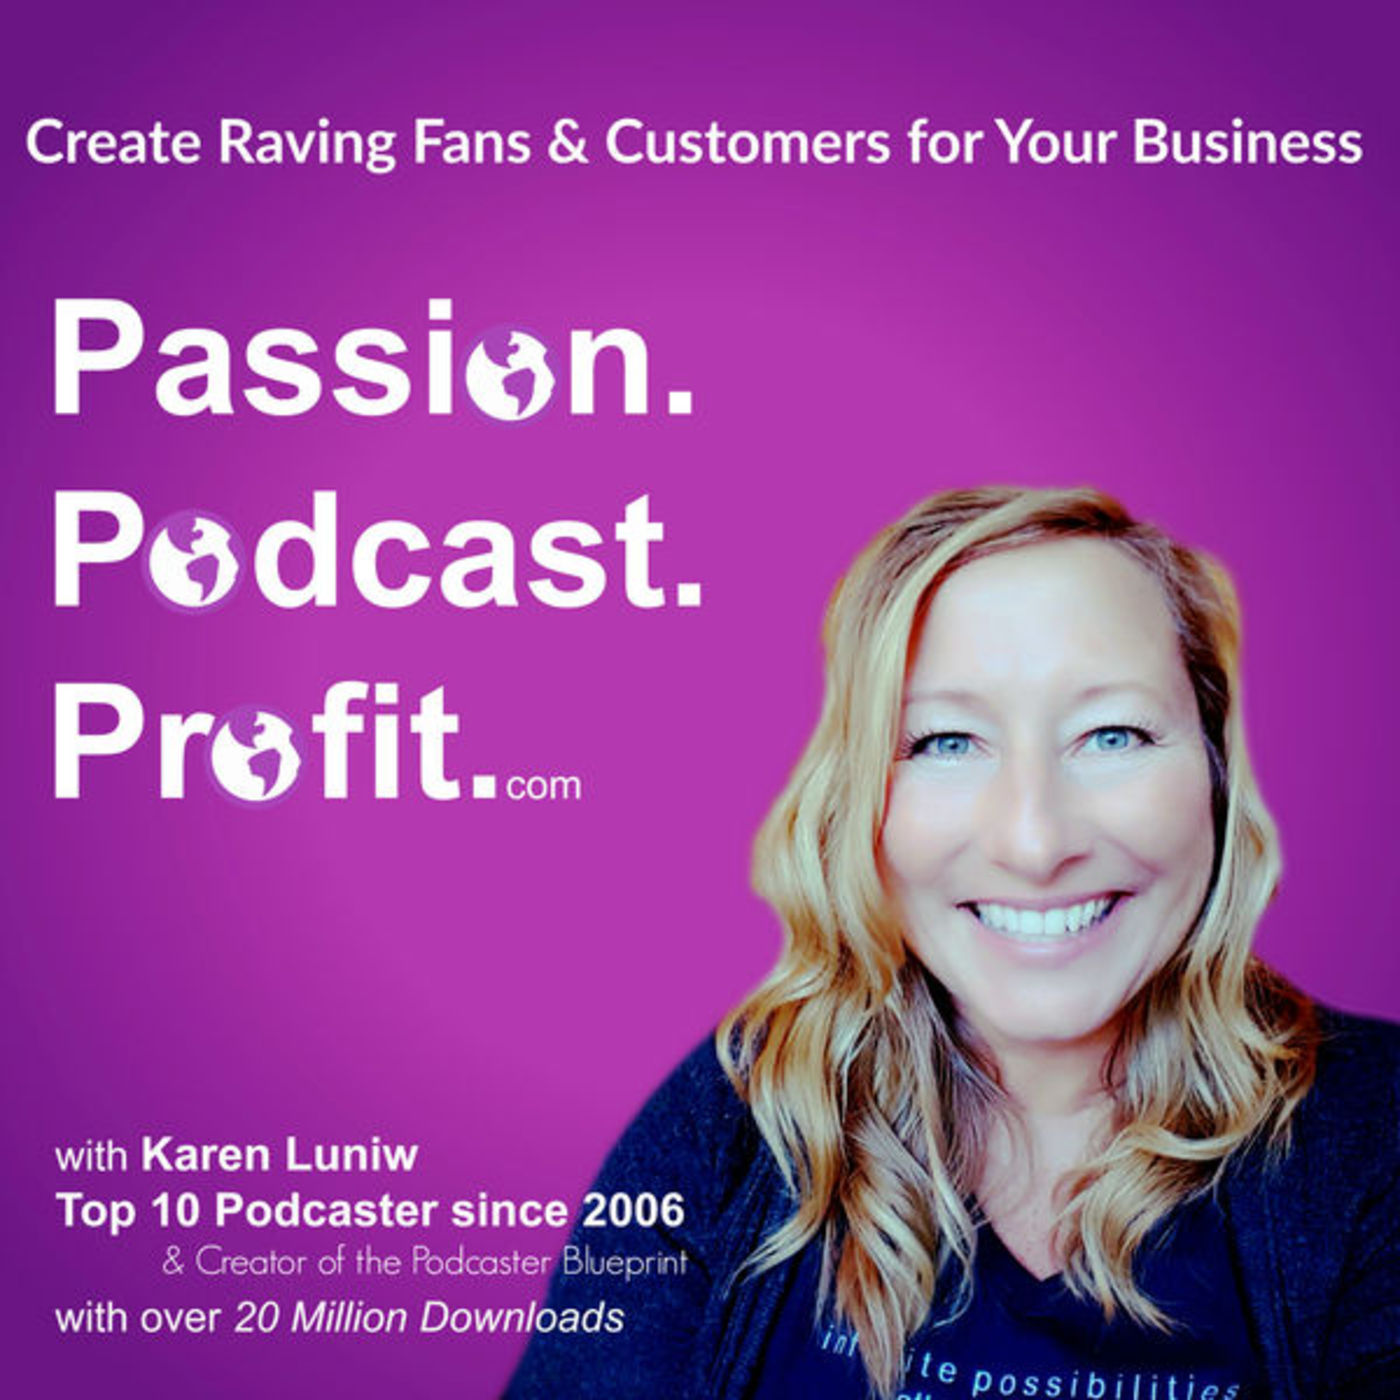 Episode 6 - Interview Guests and Find Your Purpose - Audio